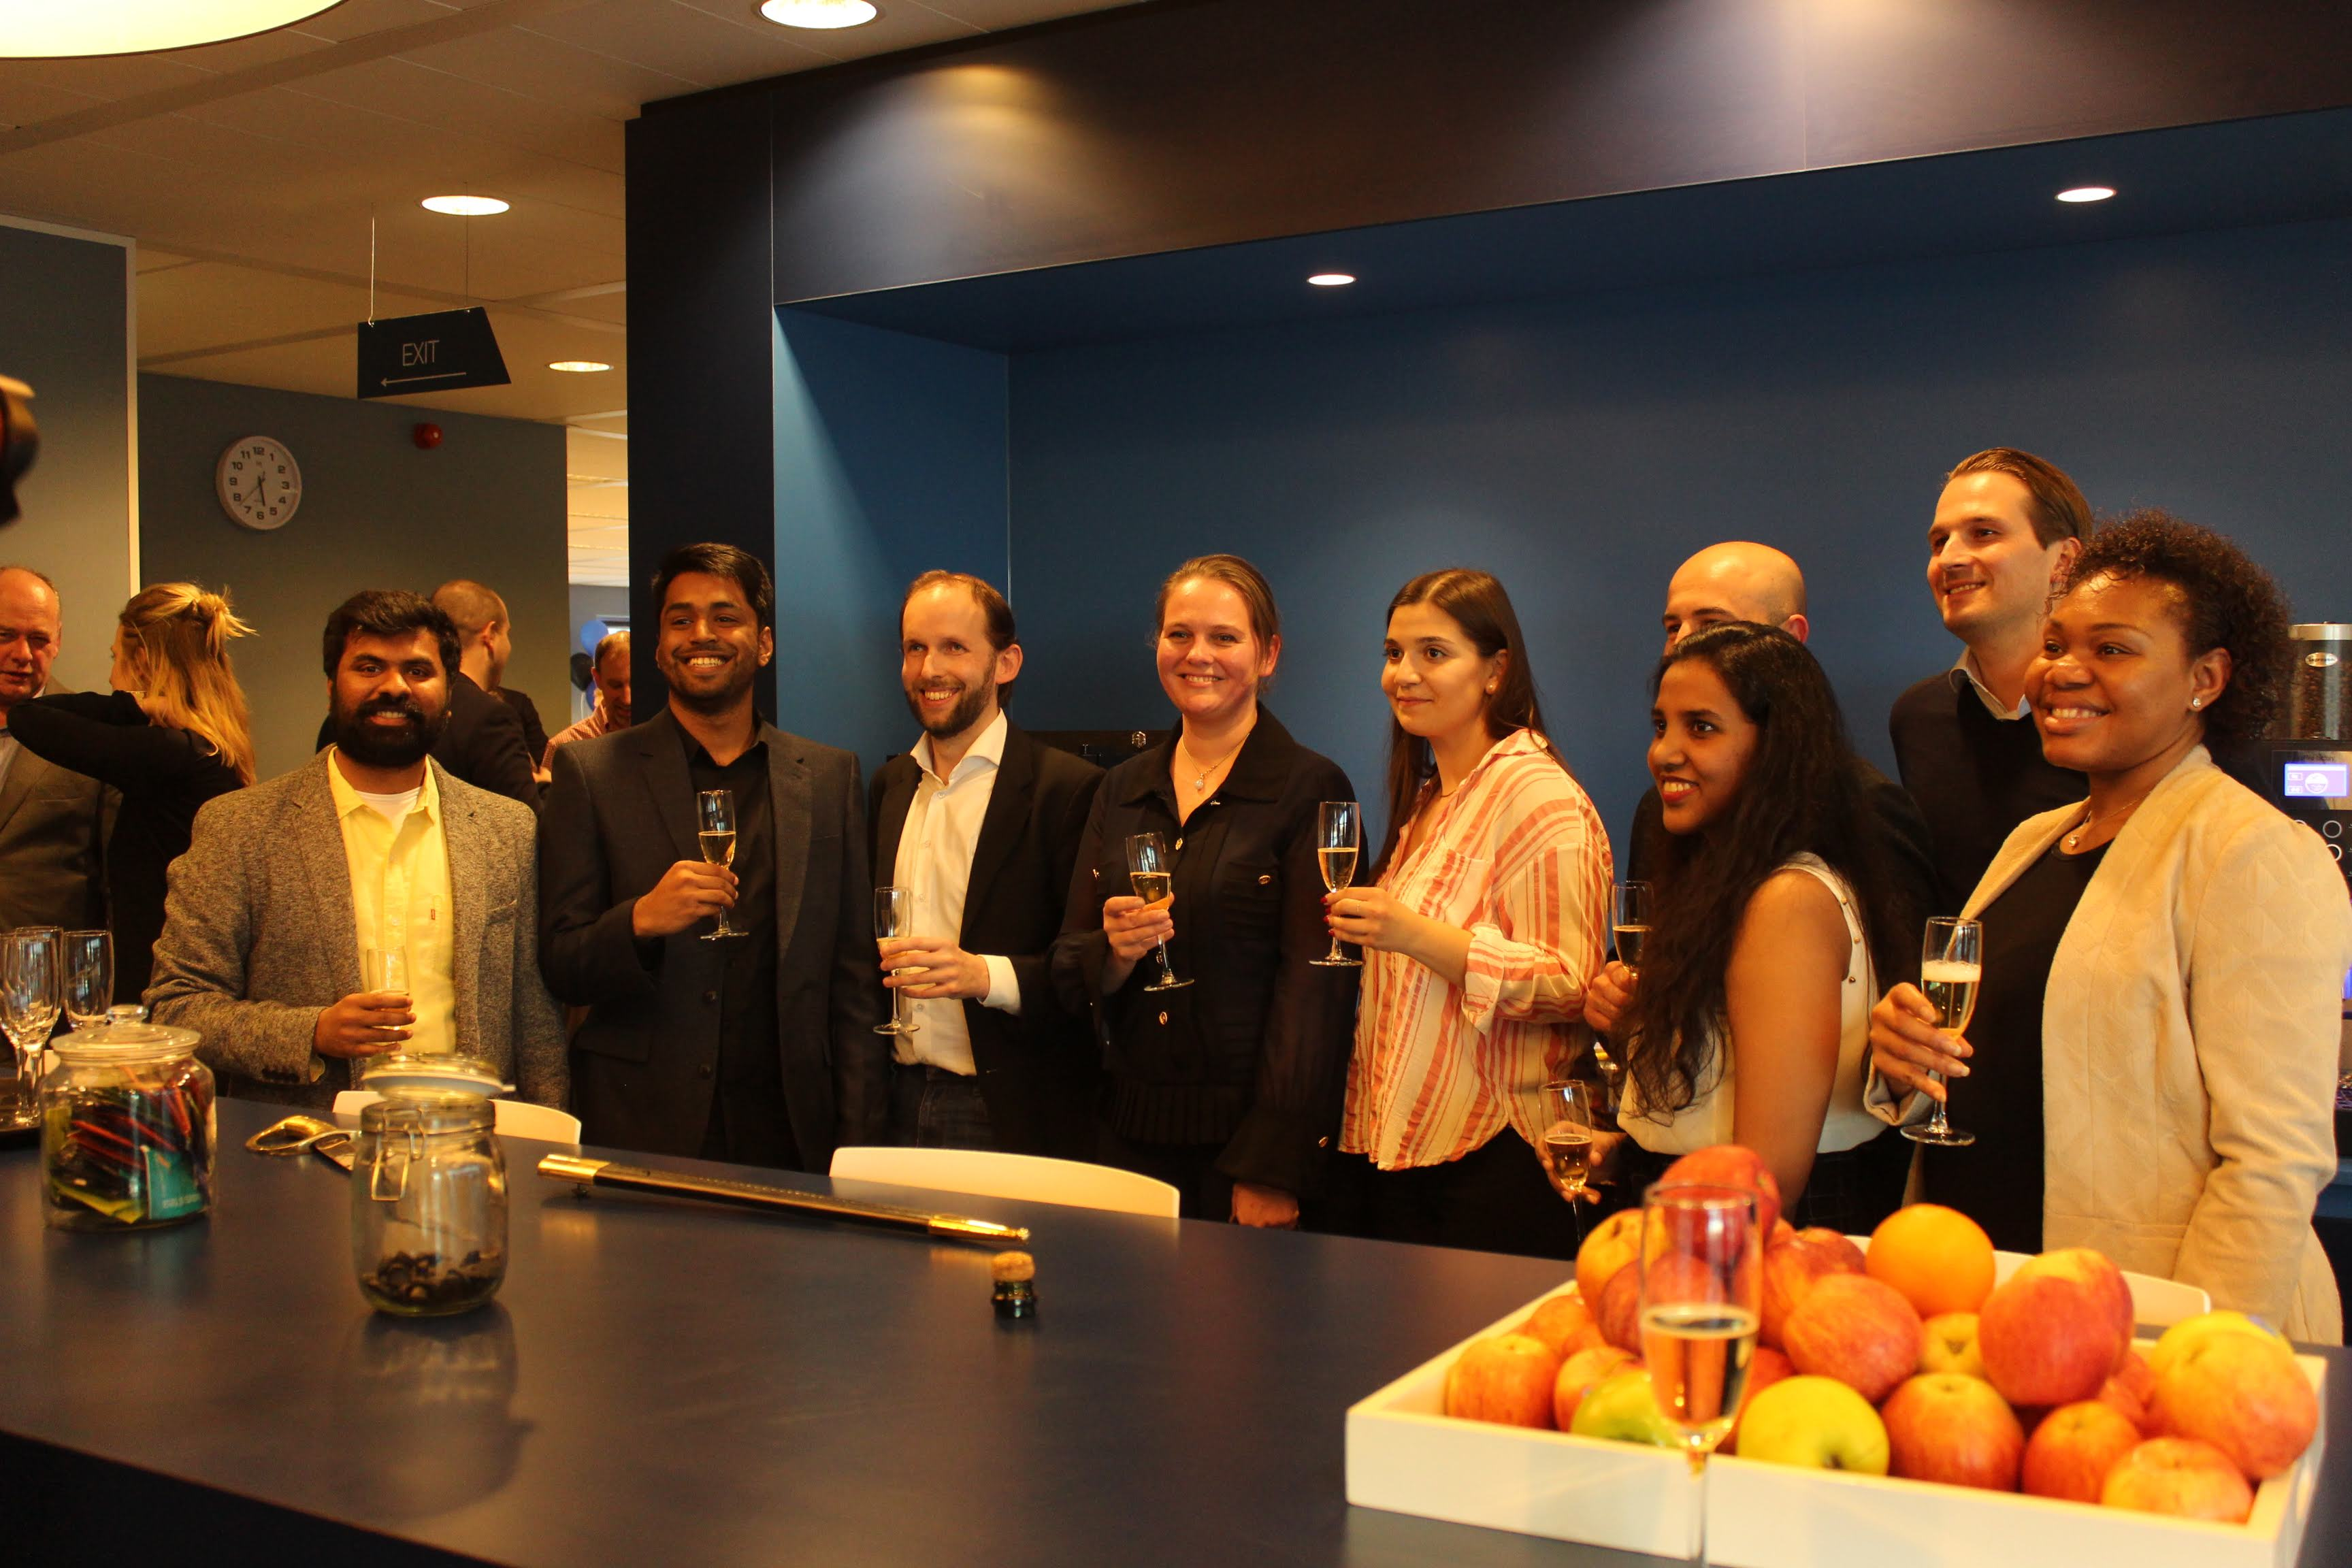 The entire Envision team and 4impact team pose together for a picture, each holding a champagne glass and smiling